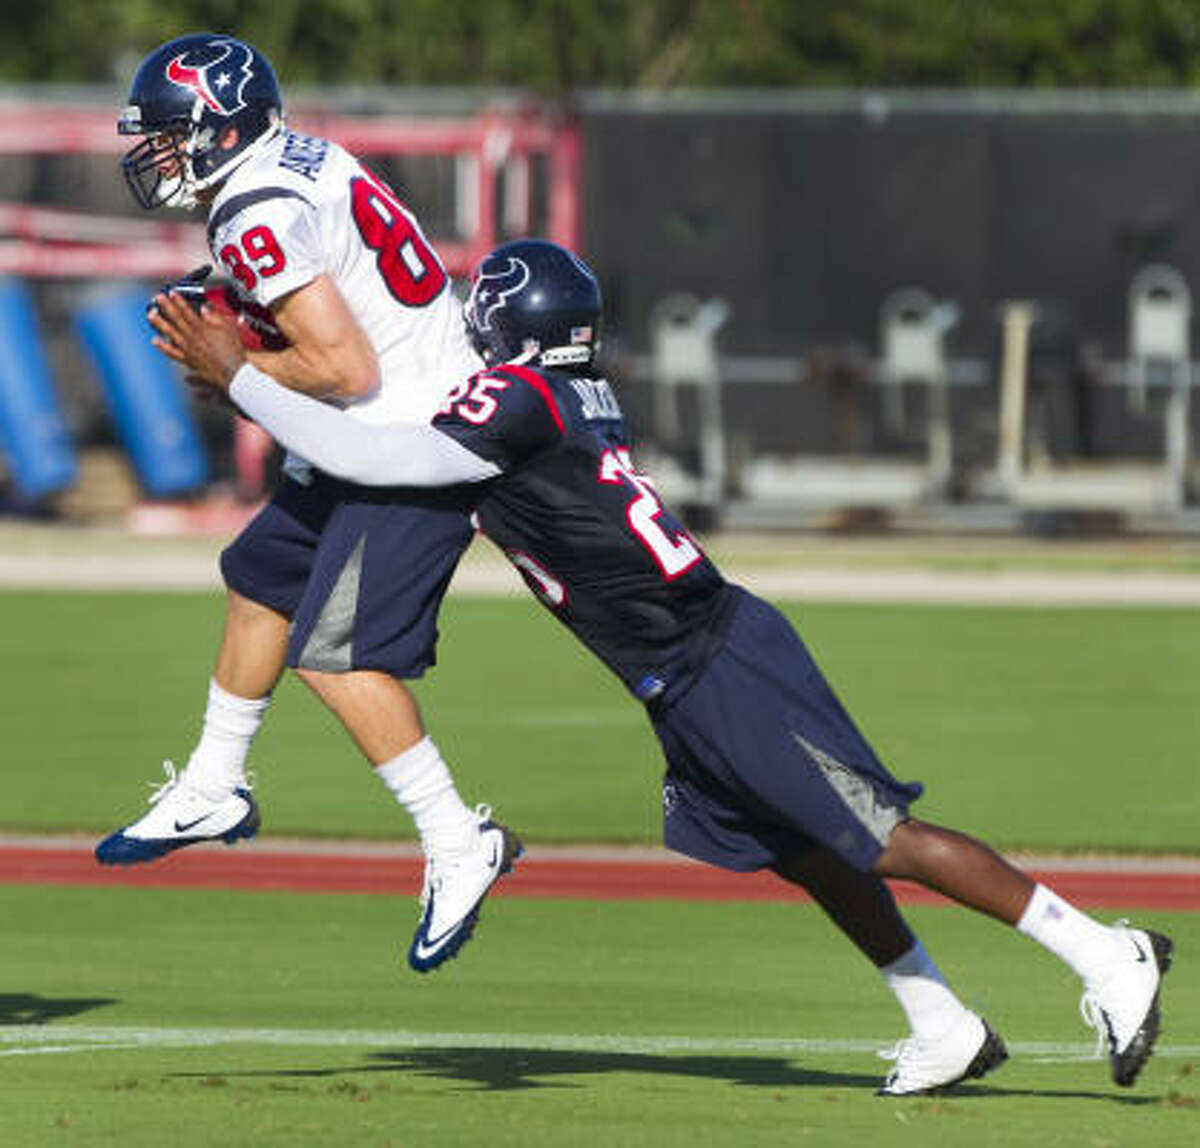 Texans wide receiver David Anderson leaps in front of cornerback Kareem Jackson to catch a pass.